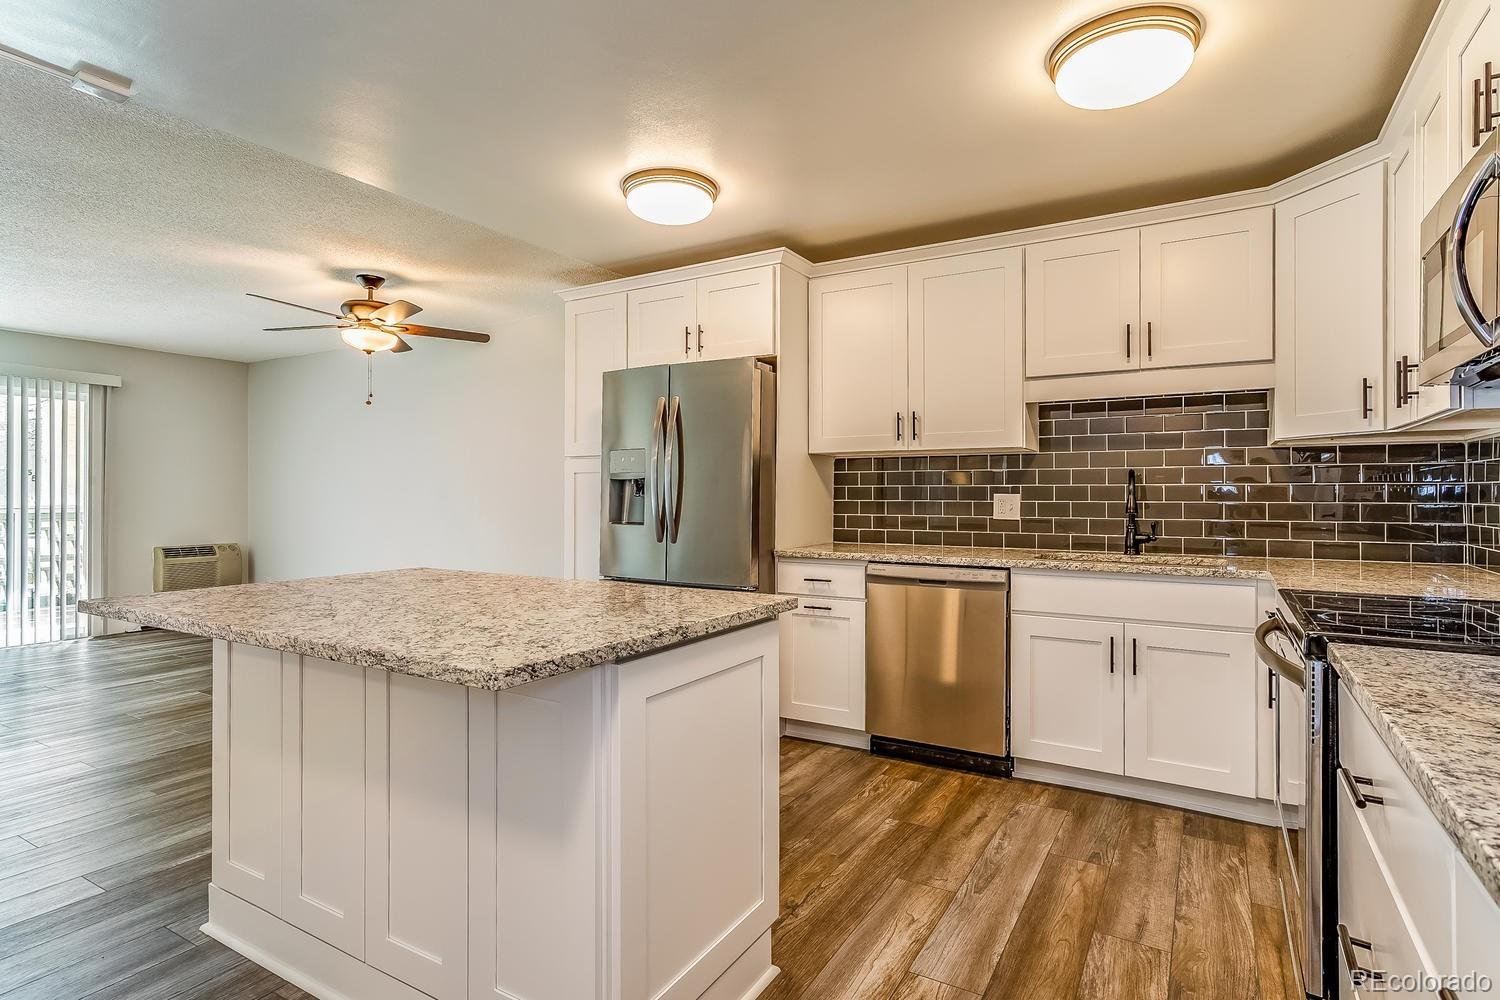 One of the nicest 1st floor remodeled condos- available now! Refreshing and current- this home is 1200 sf, with 2 bedrooms, 2 bathrooms, and 1 detached newer garage w/opener. Kitchen features an abundance of shaker white cabinetry, full stainless appliance package included, bonus island with stool seating, quartz slab countertops, and glass tile backsplash. Bathrooms gorgeous with tall vanities, granite slab counters, and designer tile floor and tub/shower surrounds. Coretec Plus flooring throughout main area, carpet in bedrooms. All new 2 tone paint, baseboards, fixtures, outlets, switches....2 updates wall a/c units. Vinyl Glass/Screen lanai enclosure, and vinyl slider door included. RTD sheltered stop close by. Building is a short walk to the clubhouse and all the amenities. Great opportunity- you do not want to miss this one! Colorado's largest active adult living community, age 55+. FHA/VA approved. HOA Dues include annual property taxes! And also heat, water, sewer, trash, 24-hour patrolling community responder, club house w/indoor & outdoor pool, hot tub, sauna, activities...9 hole par 3 golf course open to the public.